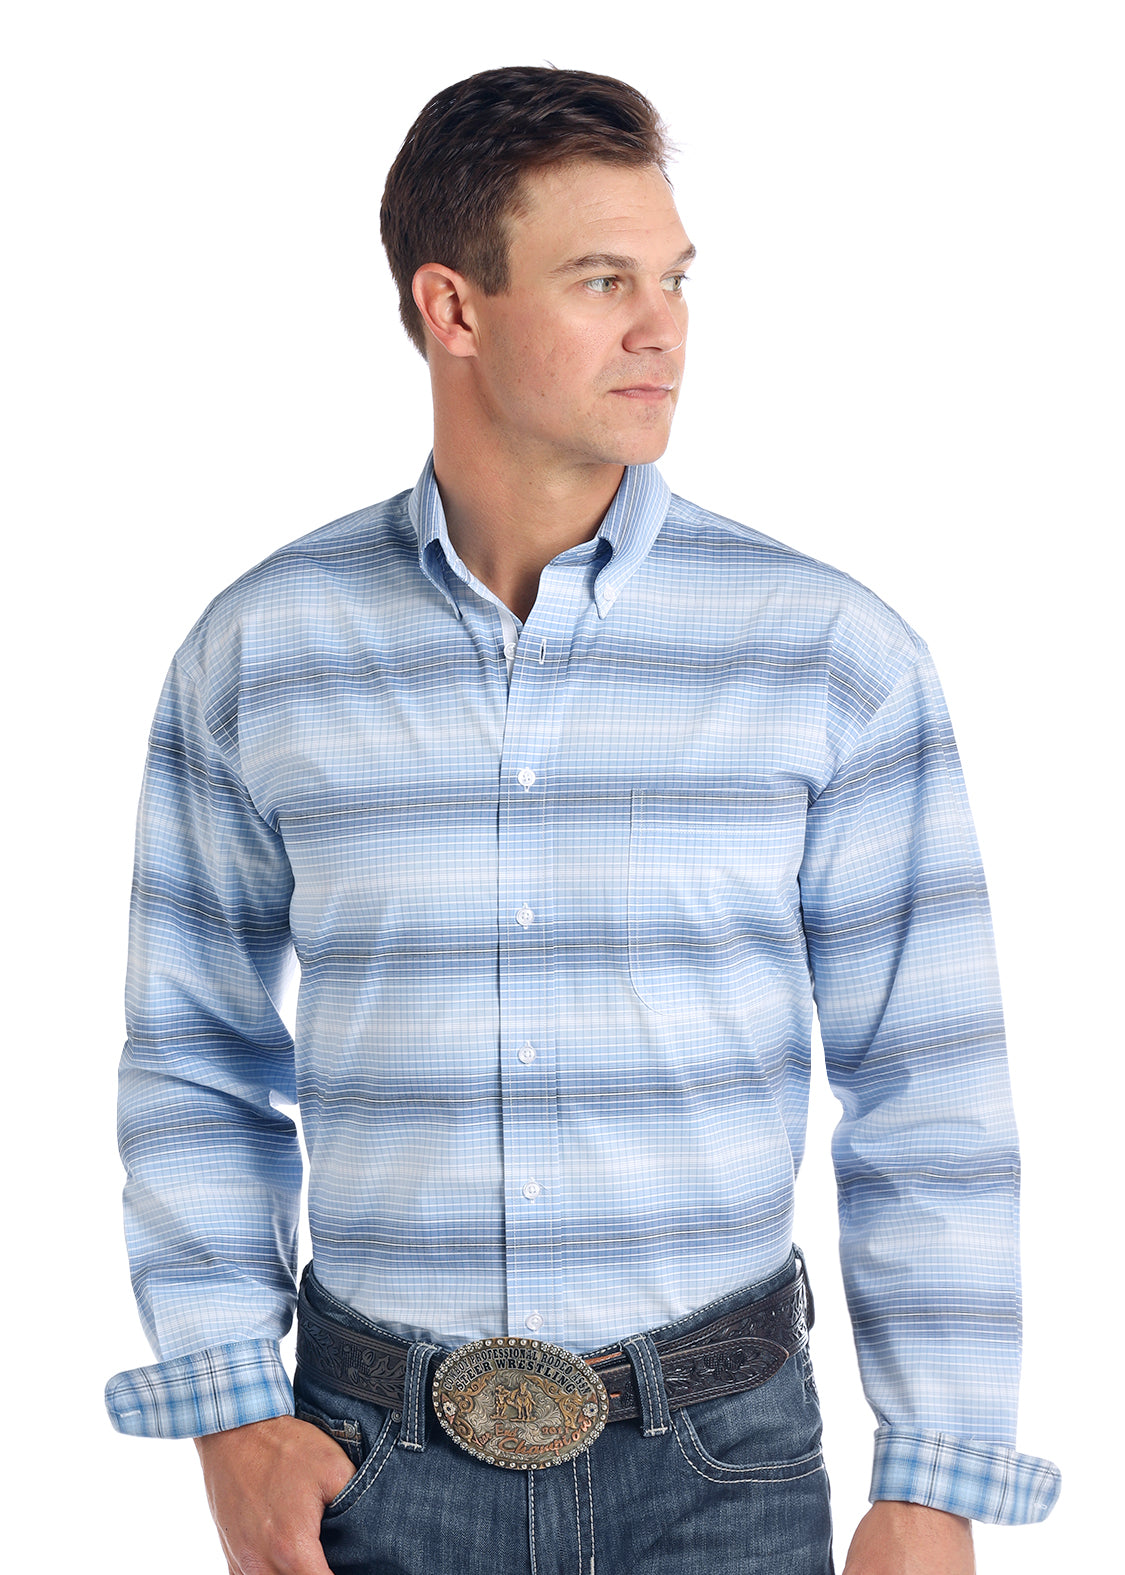 Panhandle Rough Stock Men's Button Down